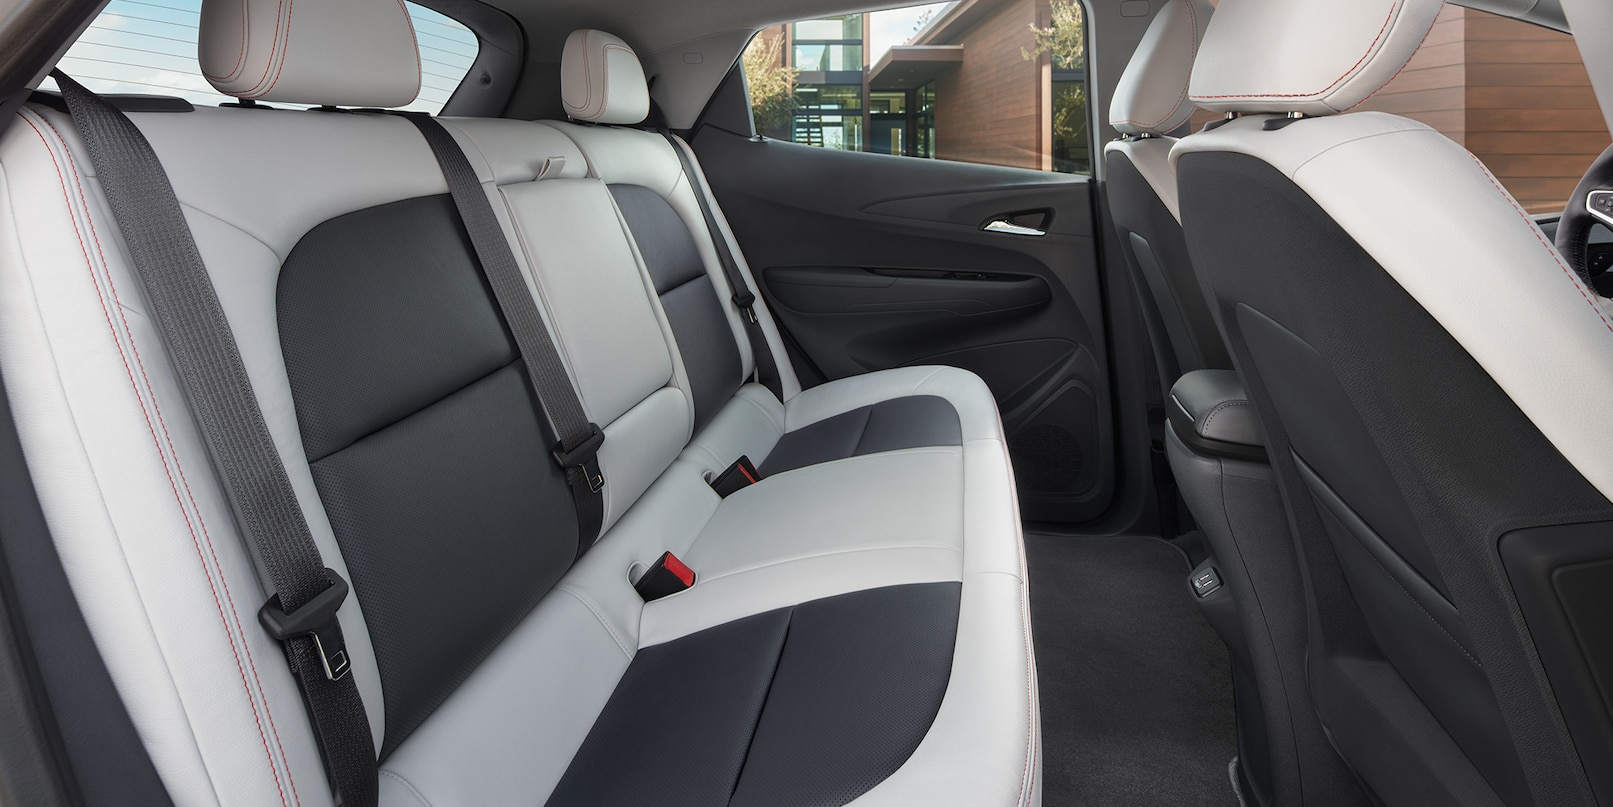 Stay Cozy in the Chevy Bolt EV!